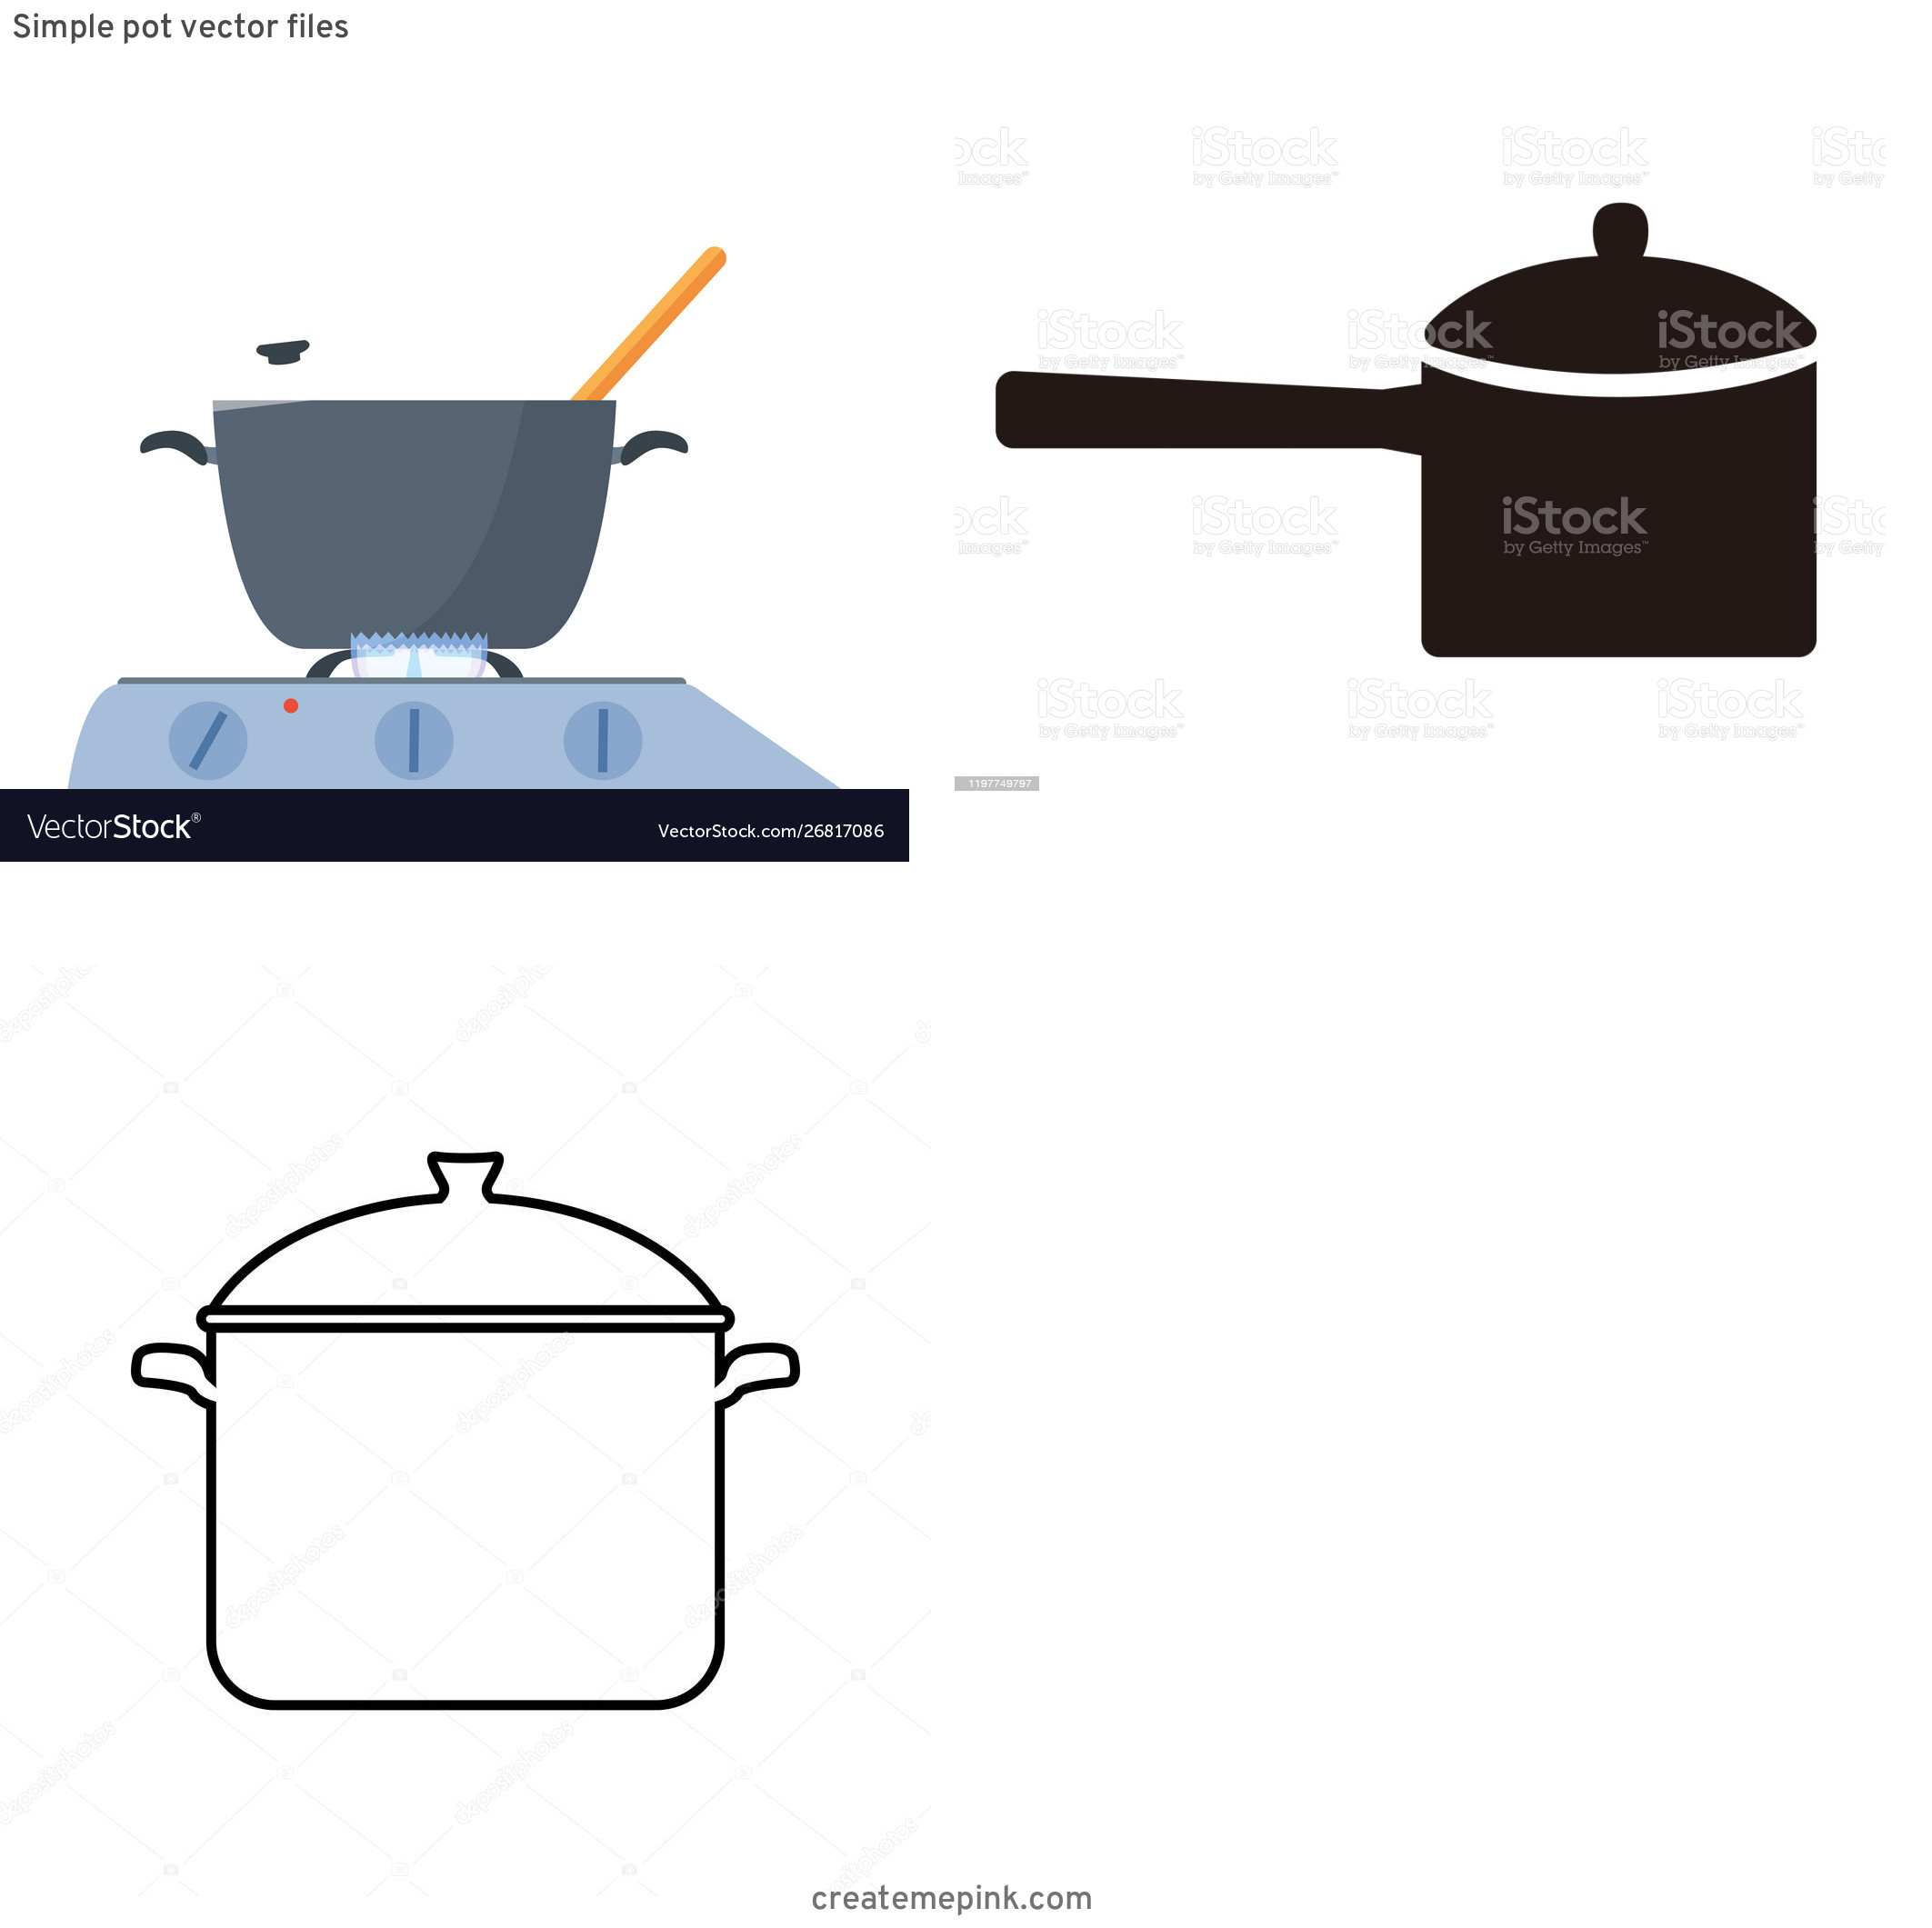 Cook Pot Vector: Simple Pot Vector Files